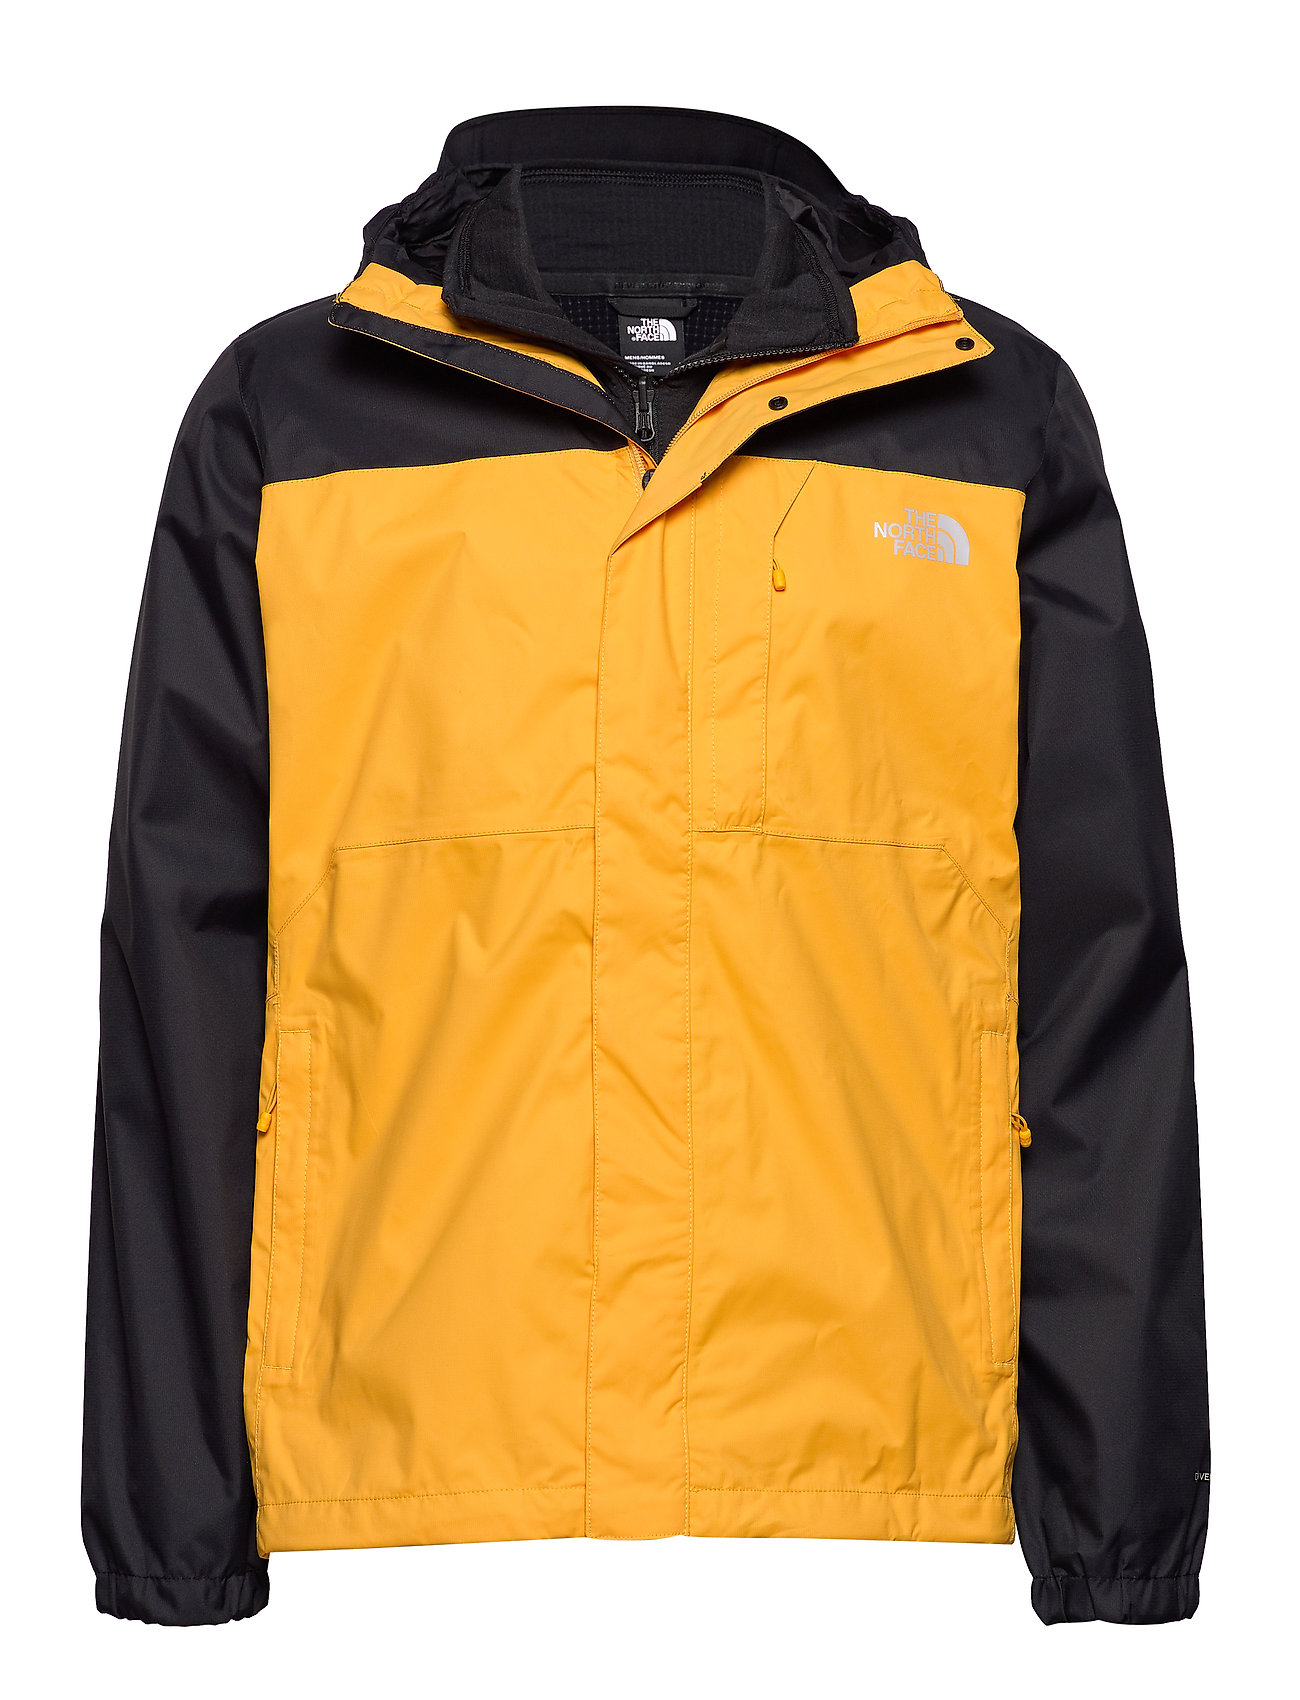 The North Face M QUEST TRICLIMATE J - TNF YELLOW/TNF